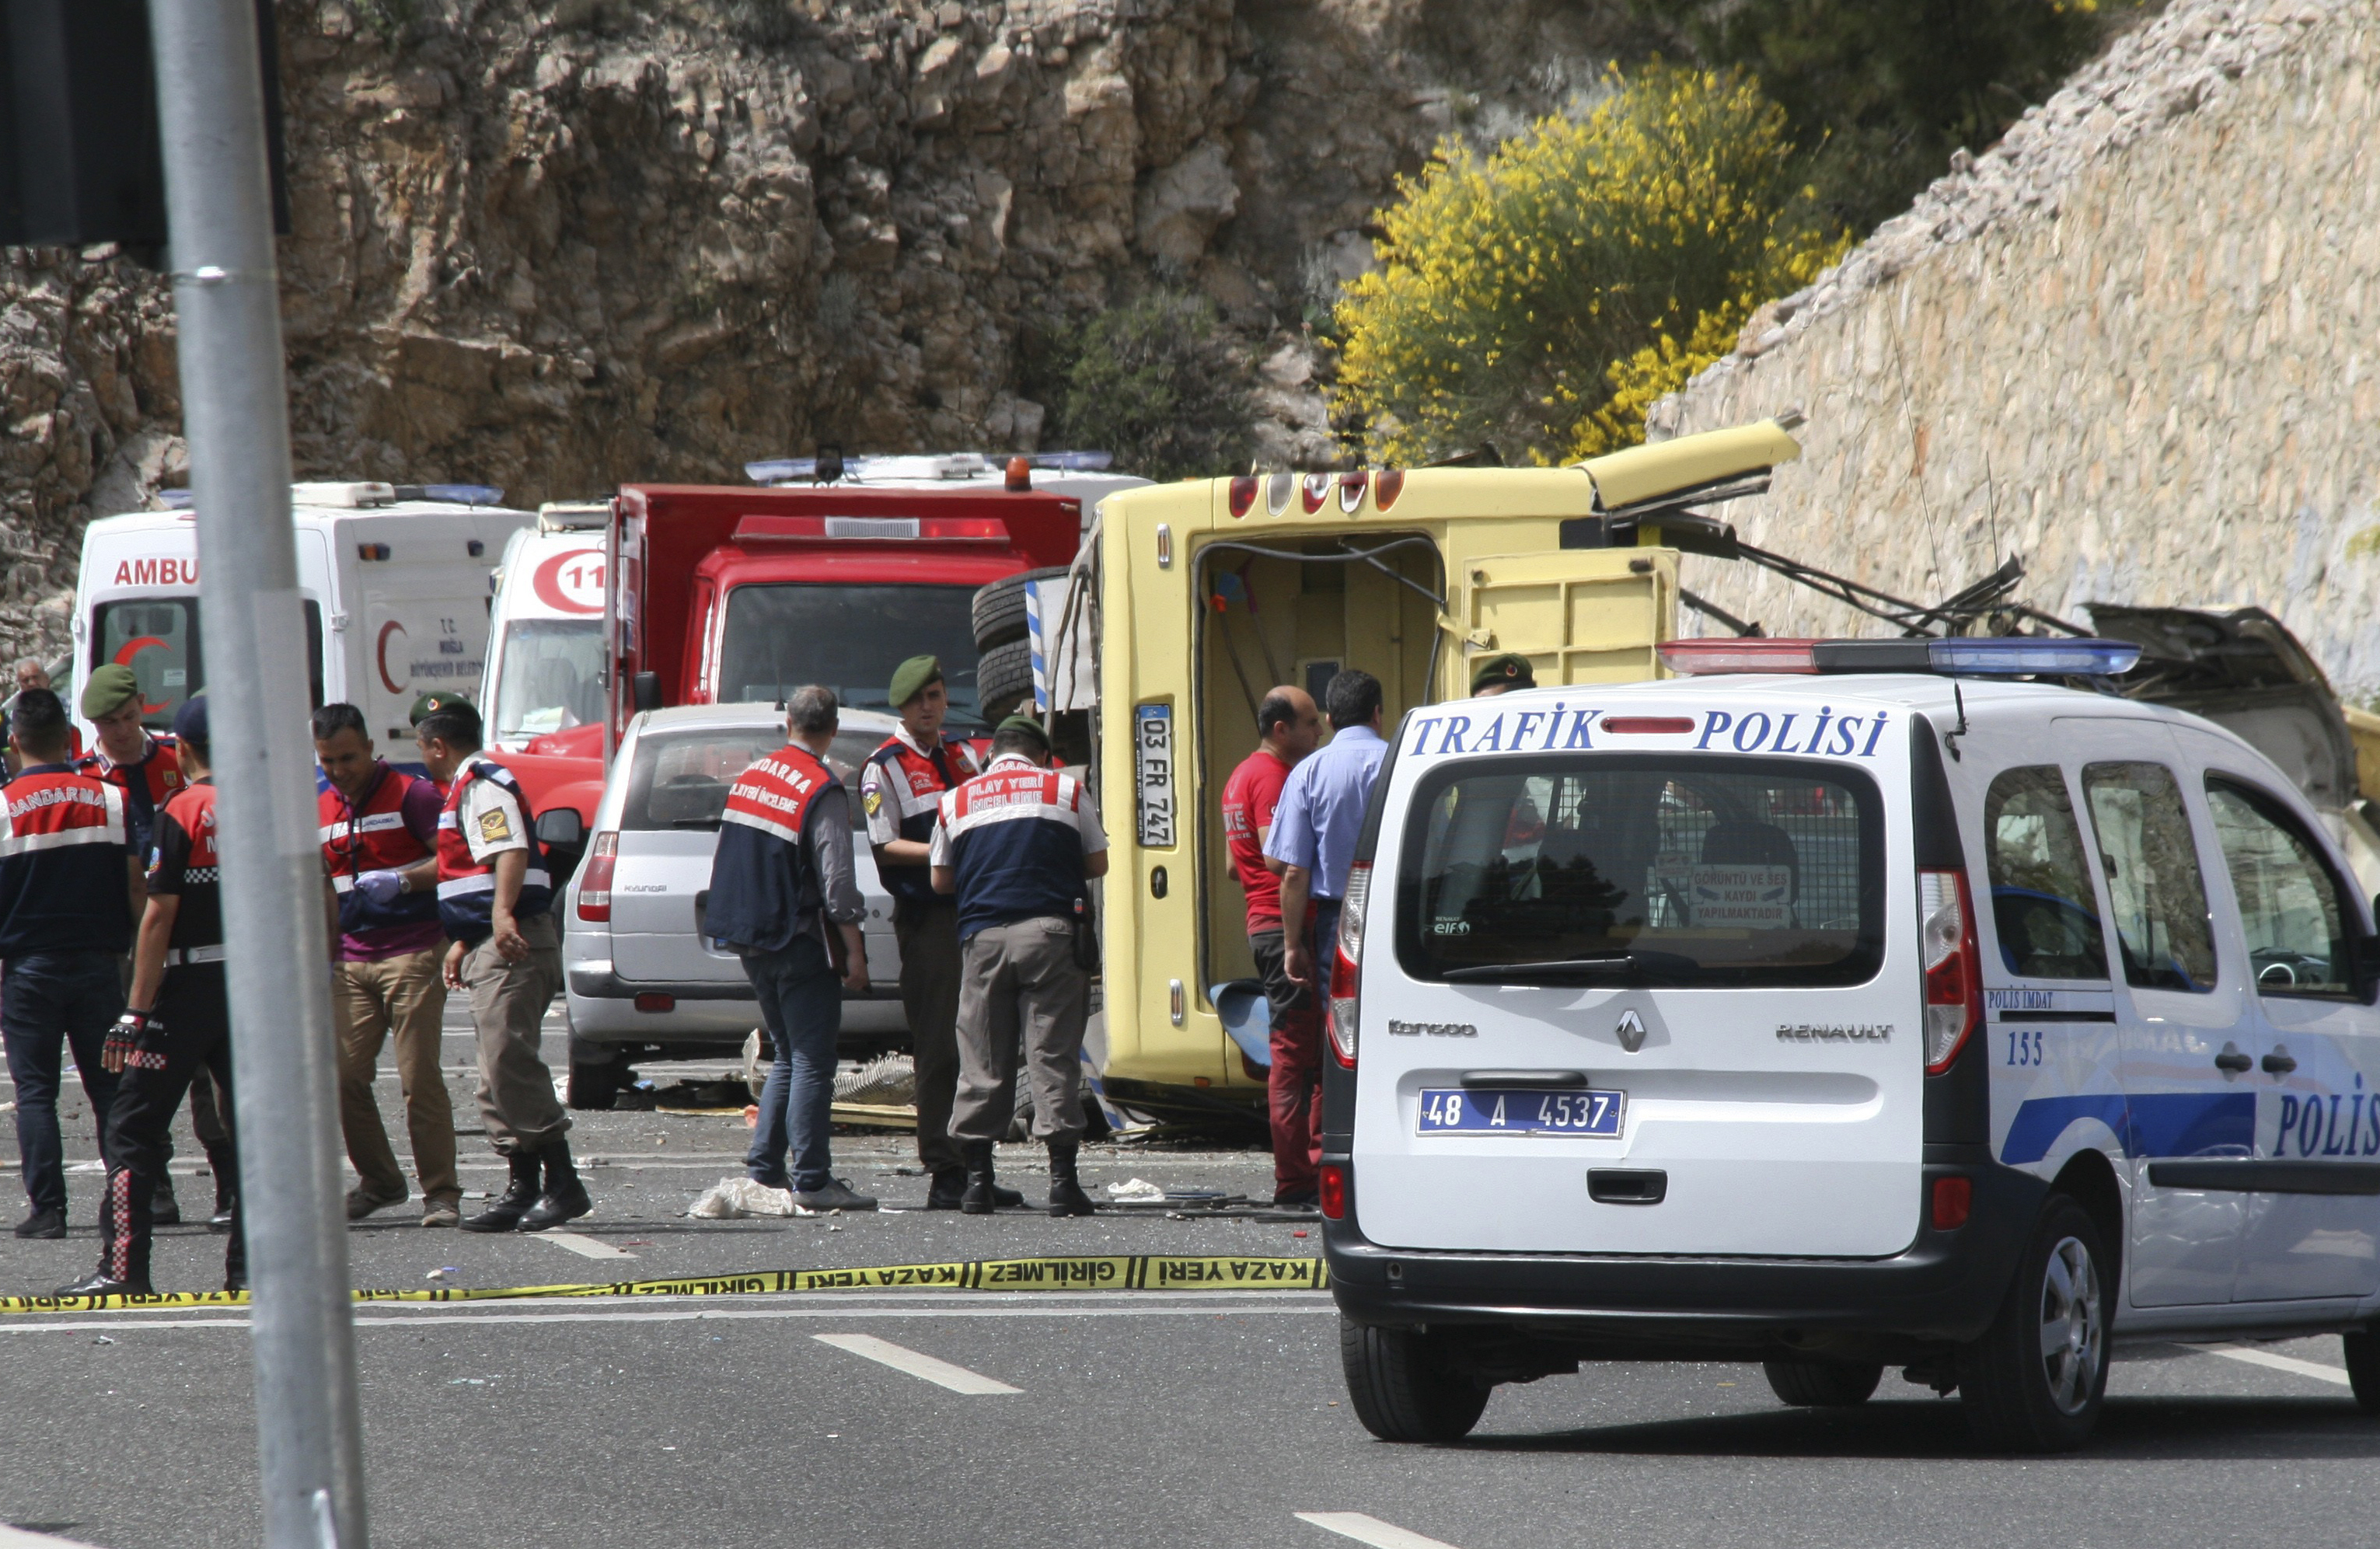 Turkish police officers work next to an overturned bus at the scene of a traffic accident, near Marmaris, western Turkey, on May 13, 2017.